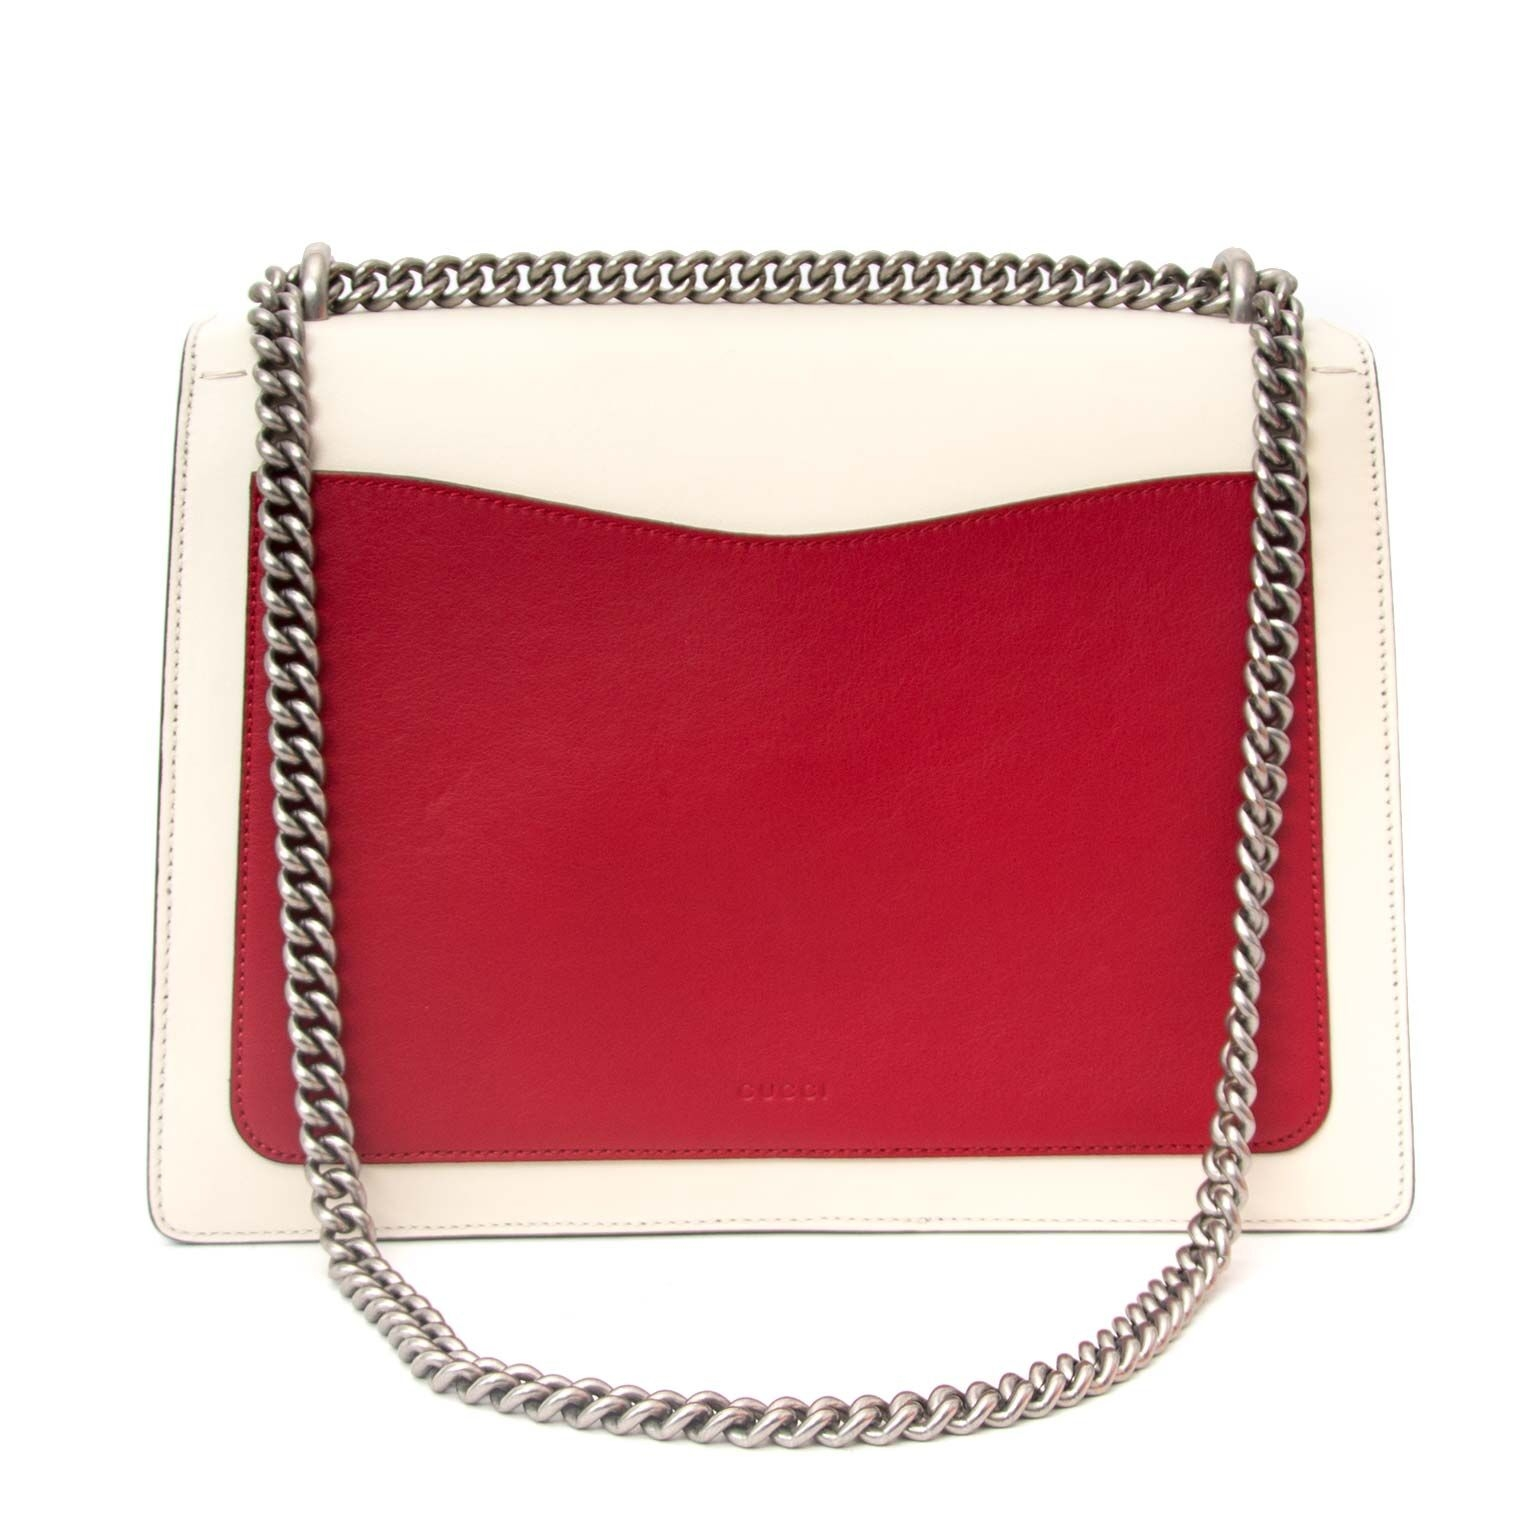 buy Gucci Dionysus Medium Shoulderbag Sequin Panther and pay save online